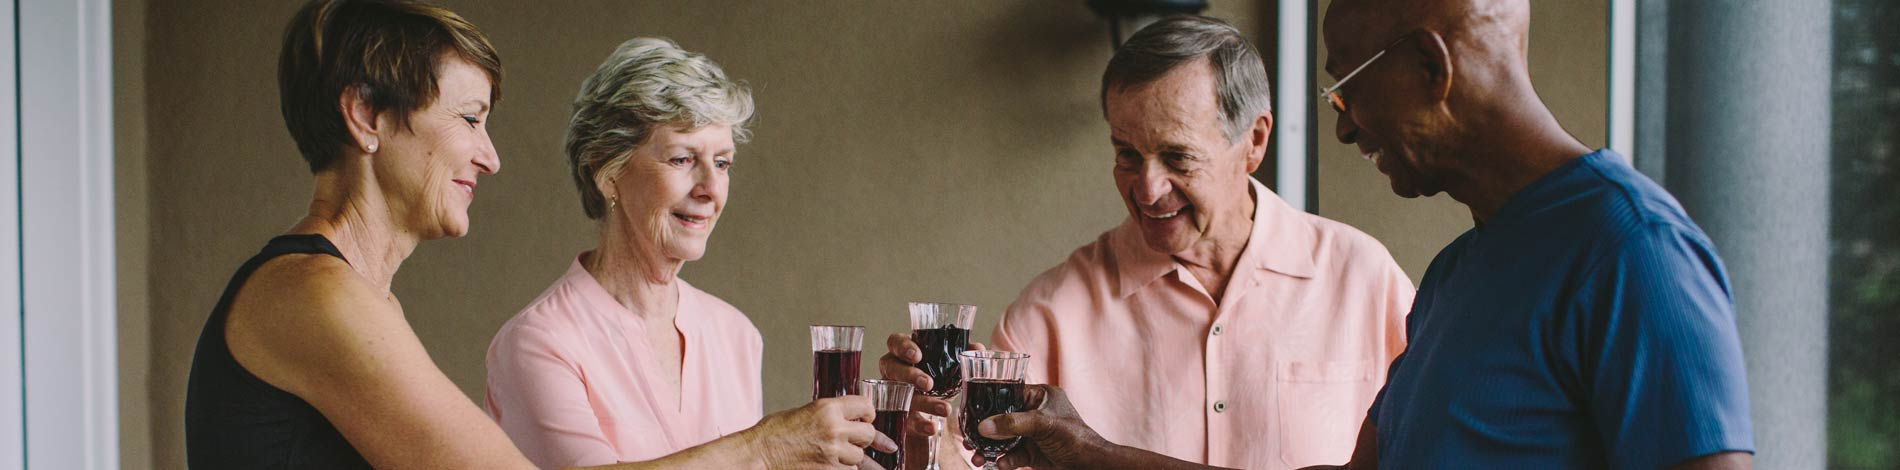 Senior Retirement Amenities